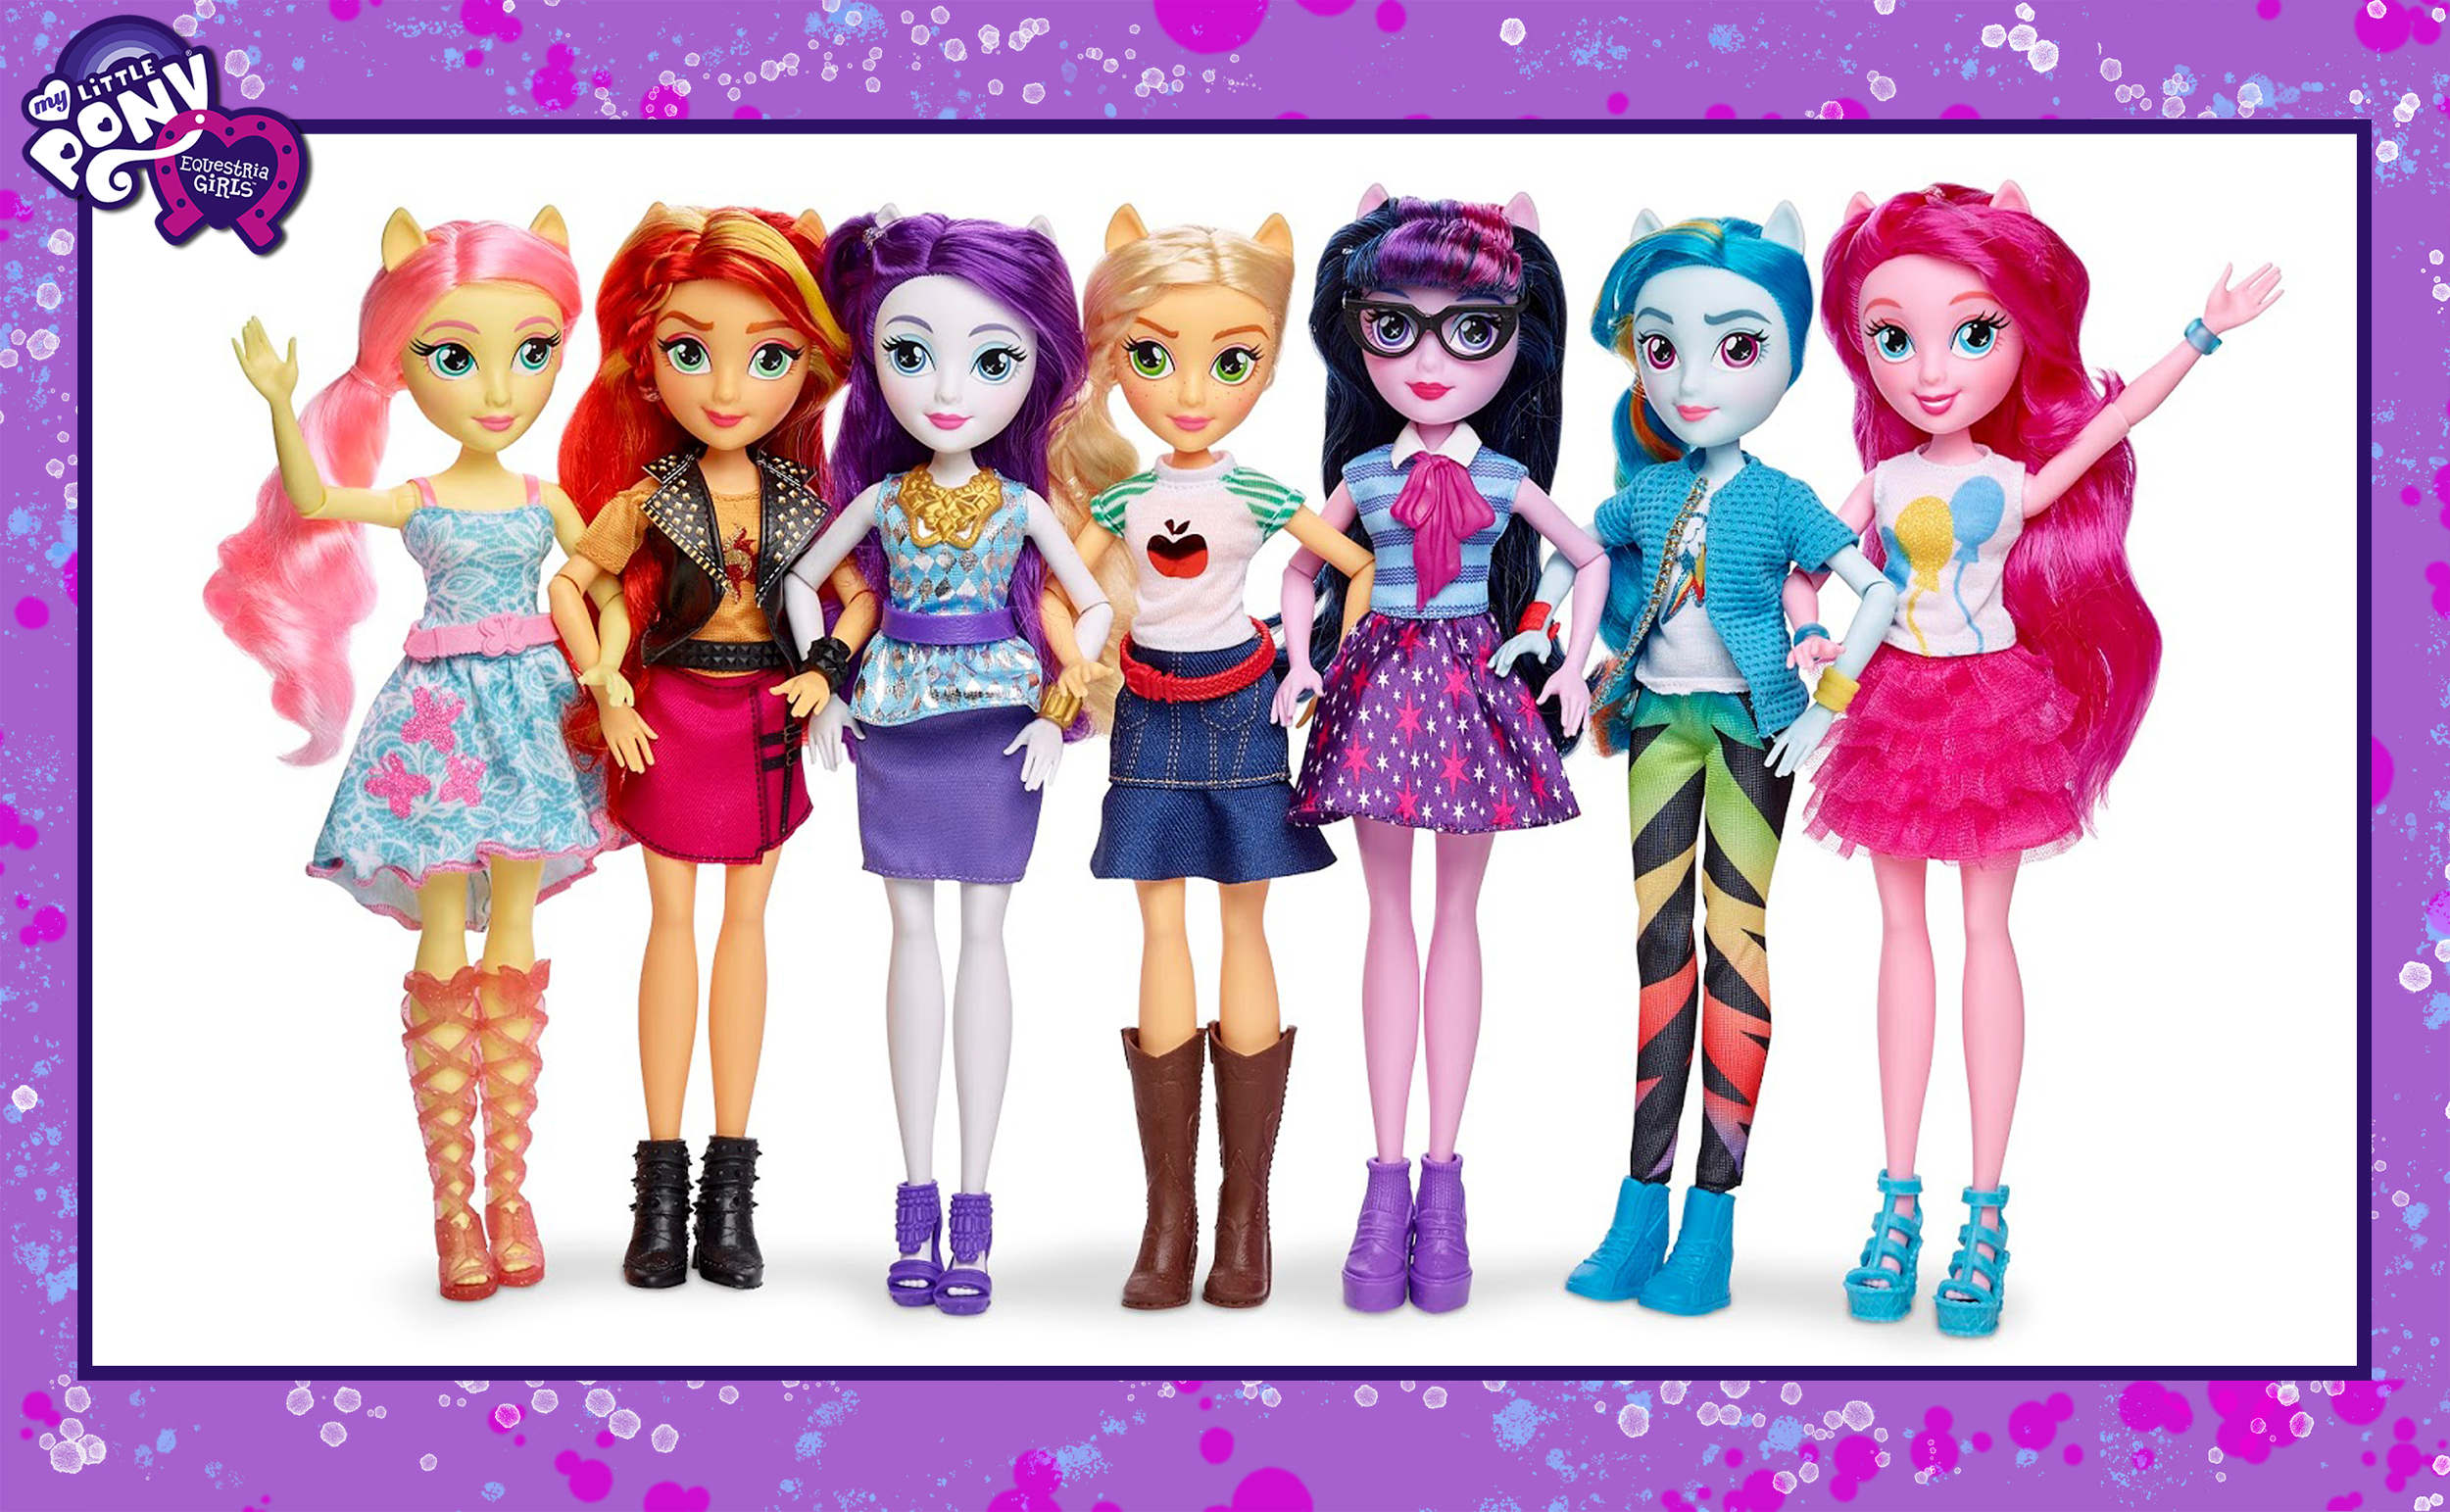 Equestria-Girls-Line-Up_Dolls-Spring-2018_Smaller_2500_c.jpg